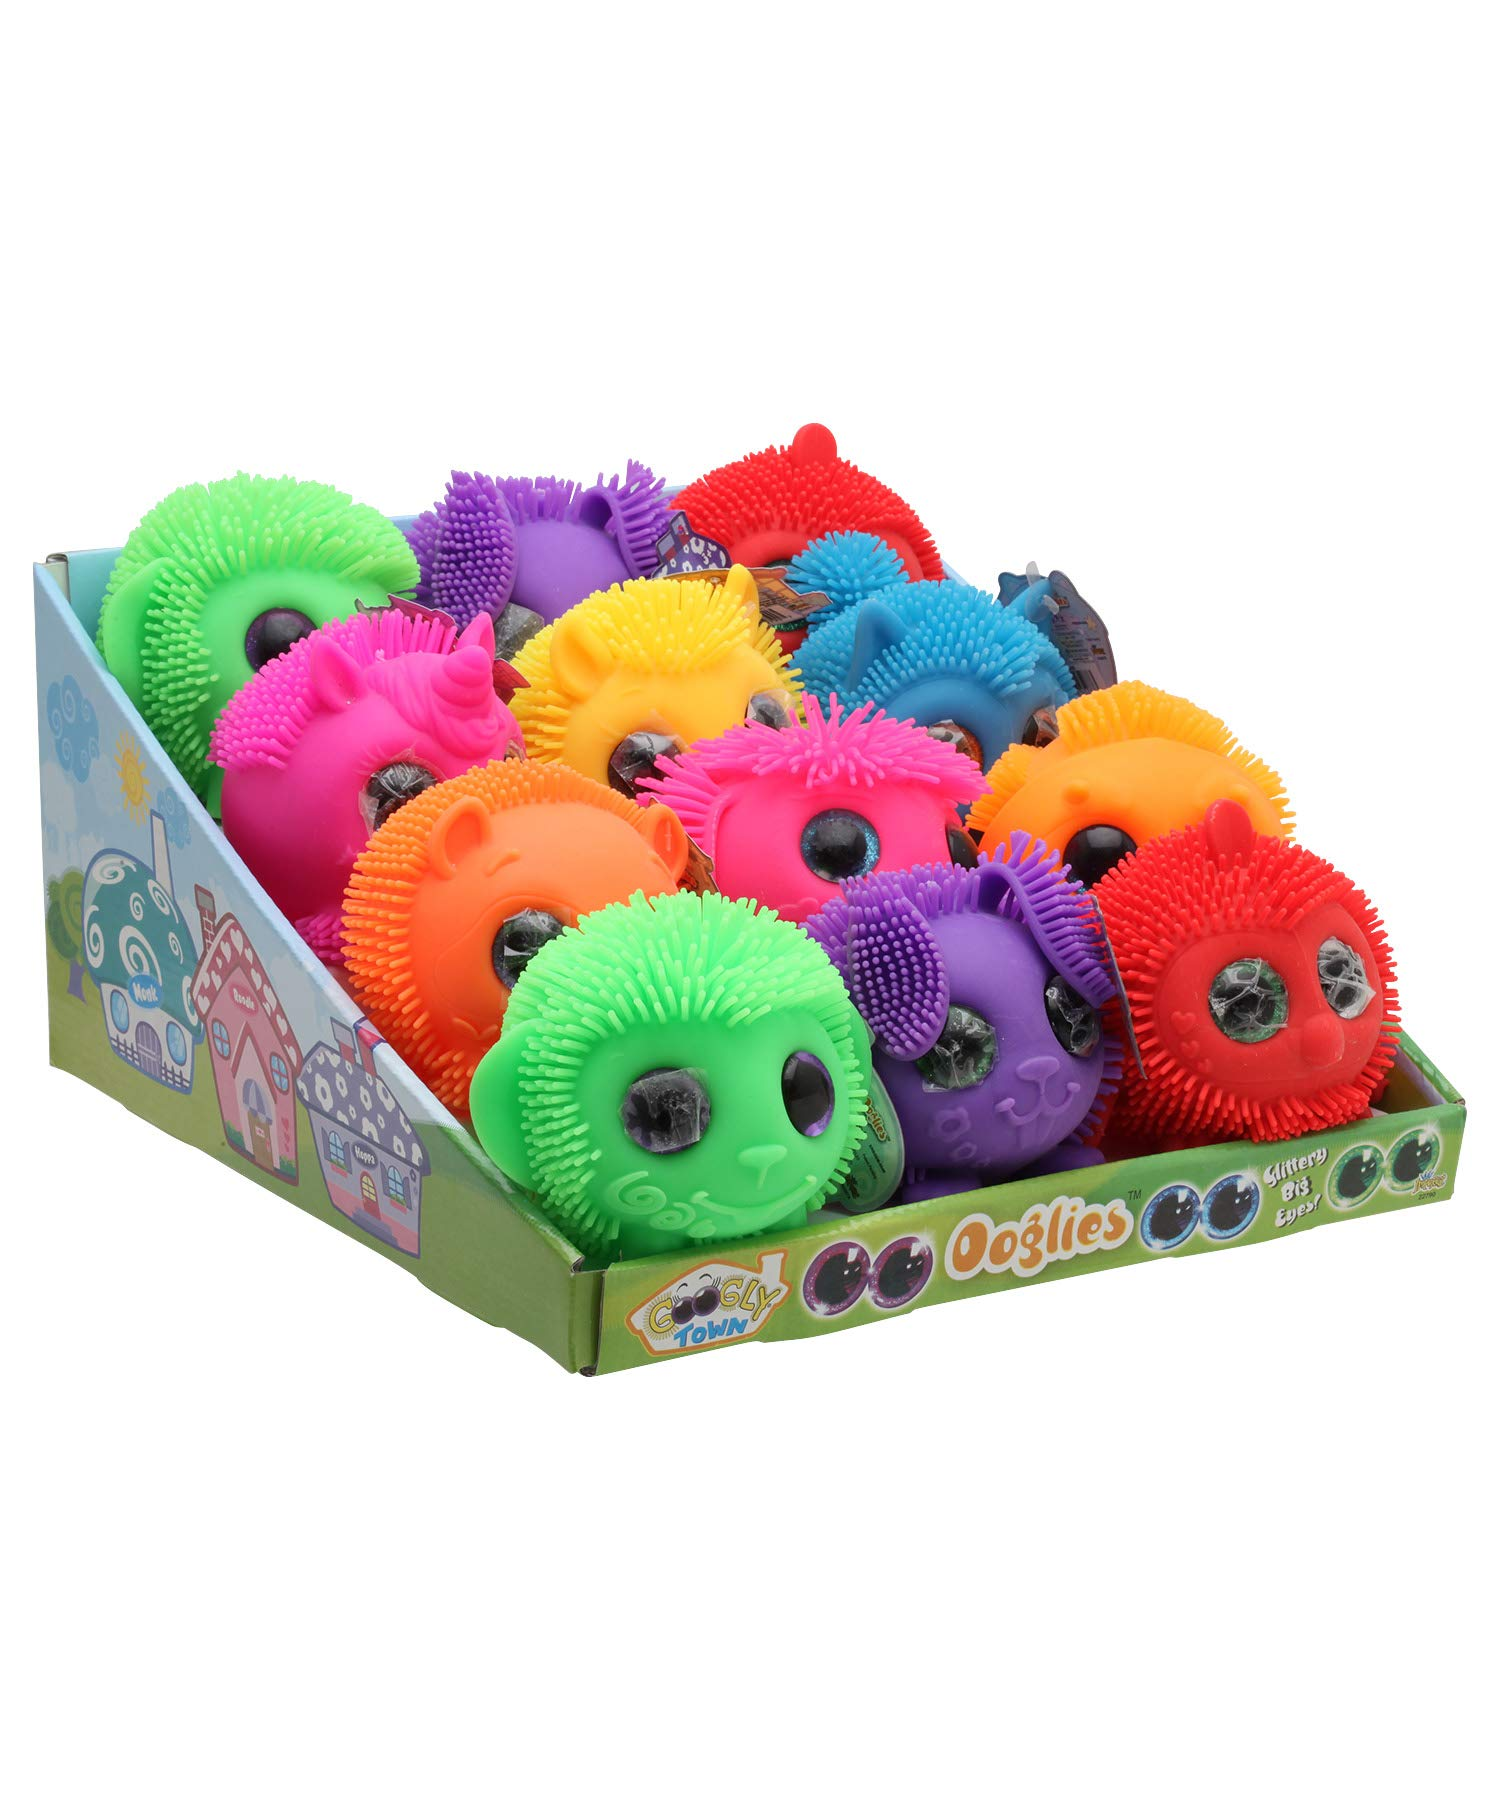 Googly Ooglies - Party Pack of 12 Balls